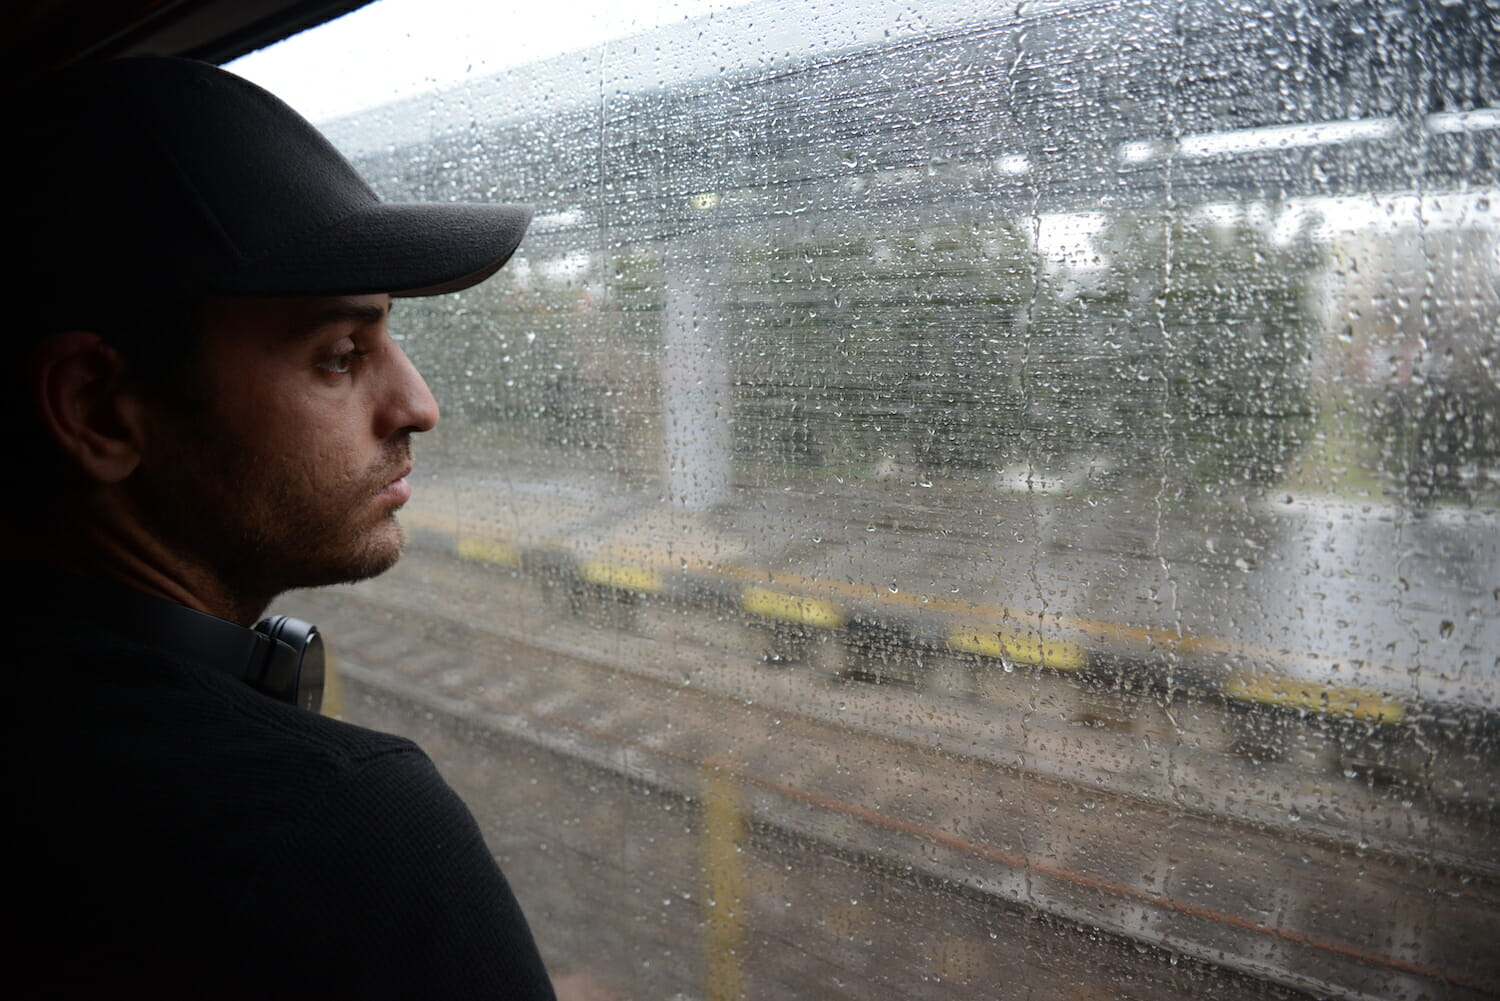 Izidor Ruckel looks out the window of a train last April. He was on his way to his hometown of Sighetu Marmatiei, Romania. (Thomas B. Szalay / For the Times)